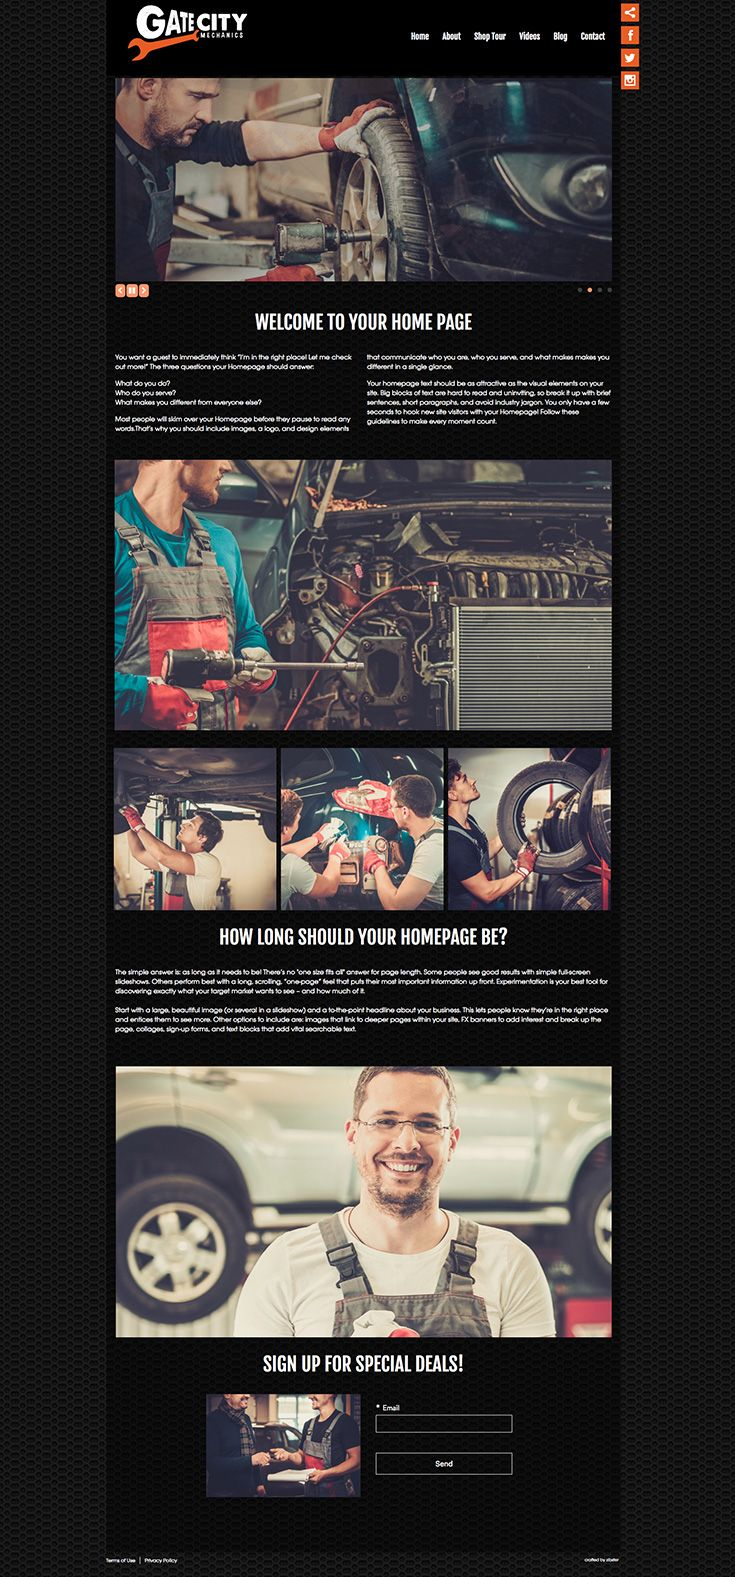 34 best 2017 zibster website templates images on pinterest role gate city zibster website template great for a mechanic or small business cheaphphosting Images